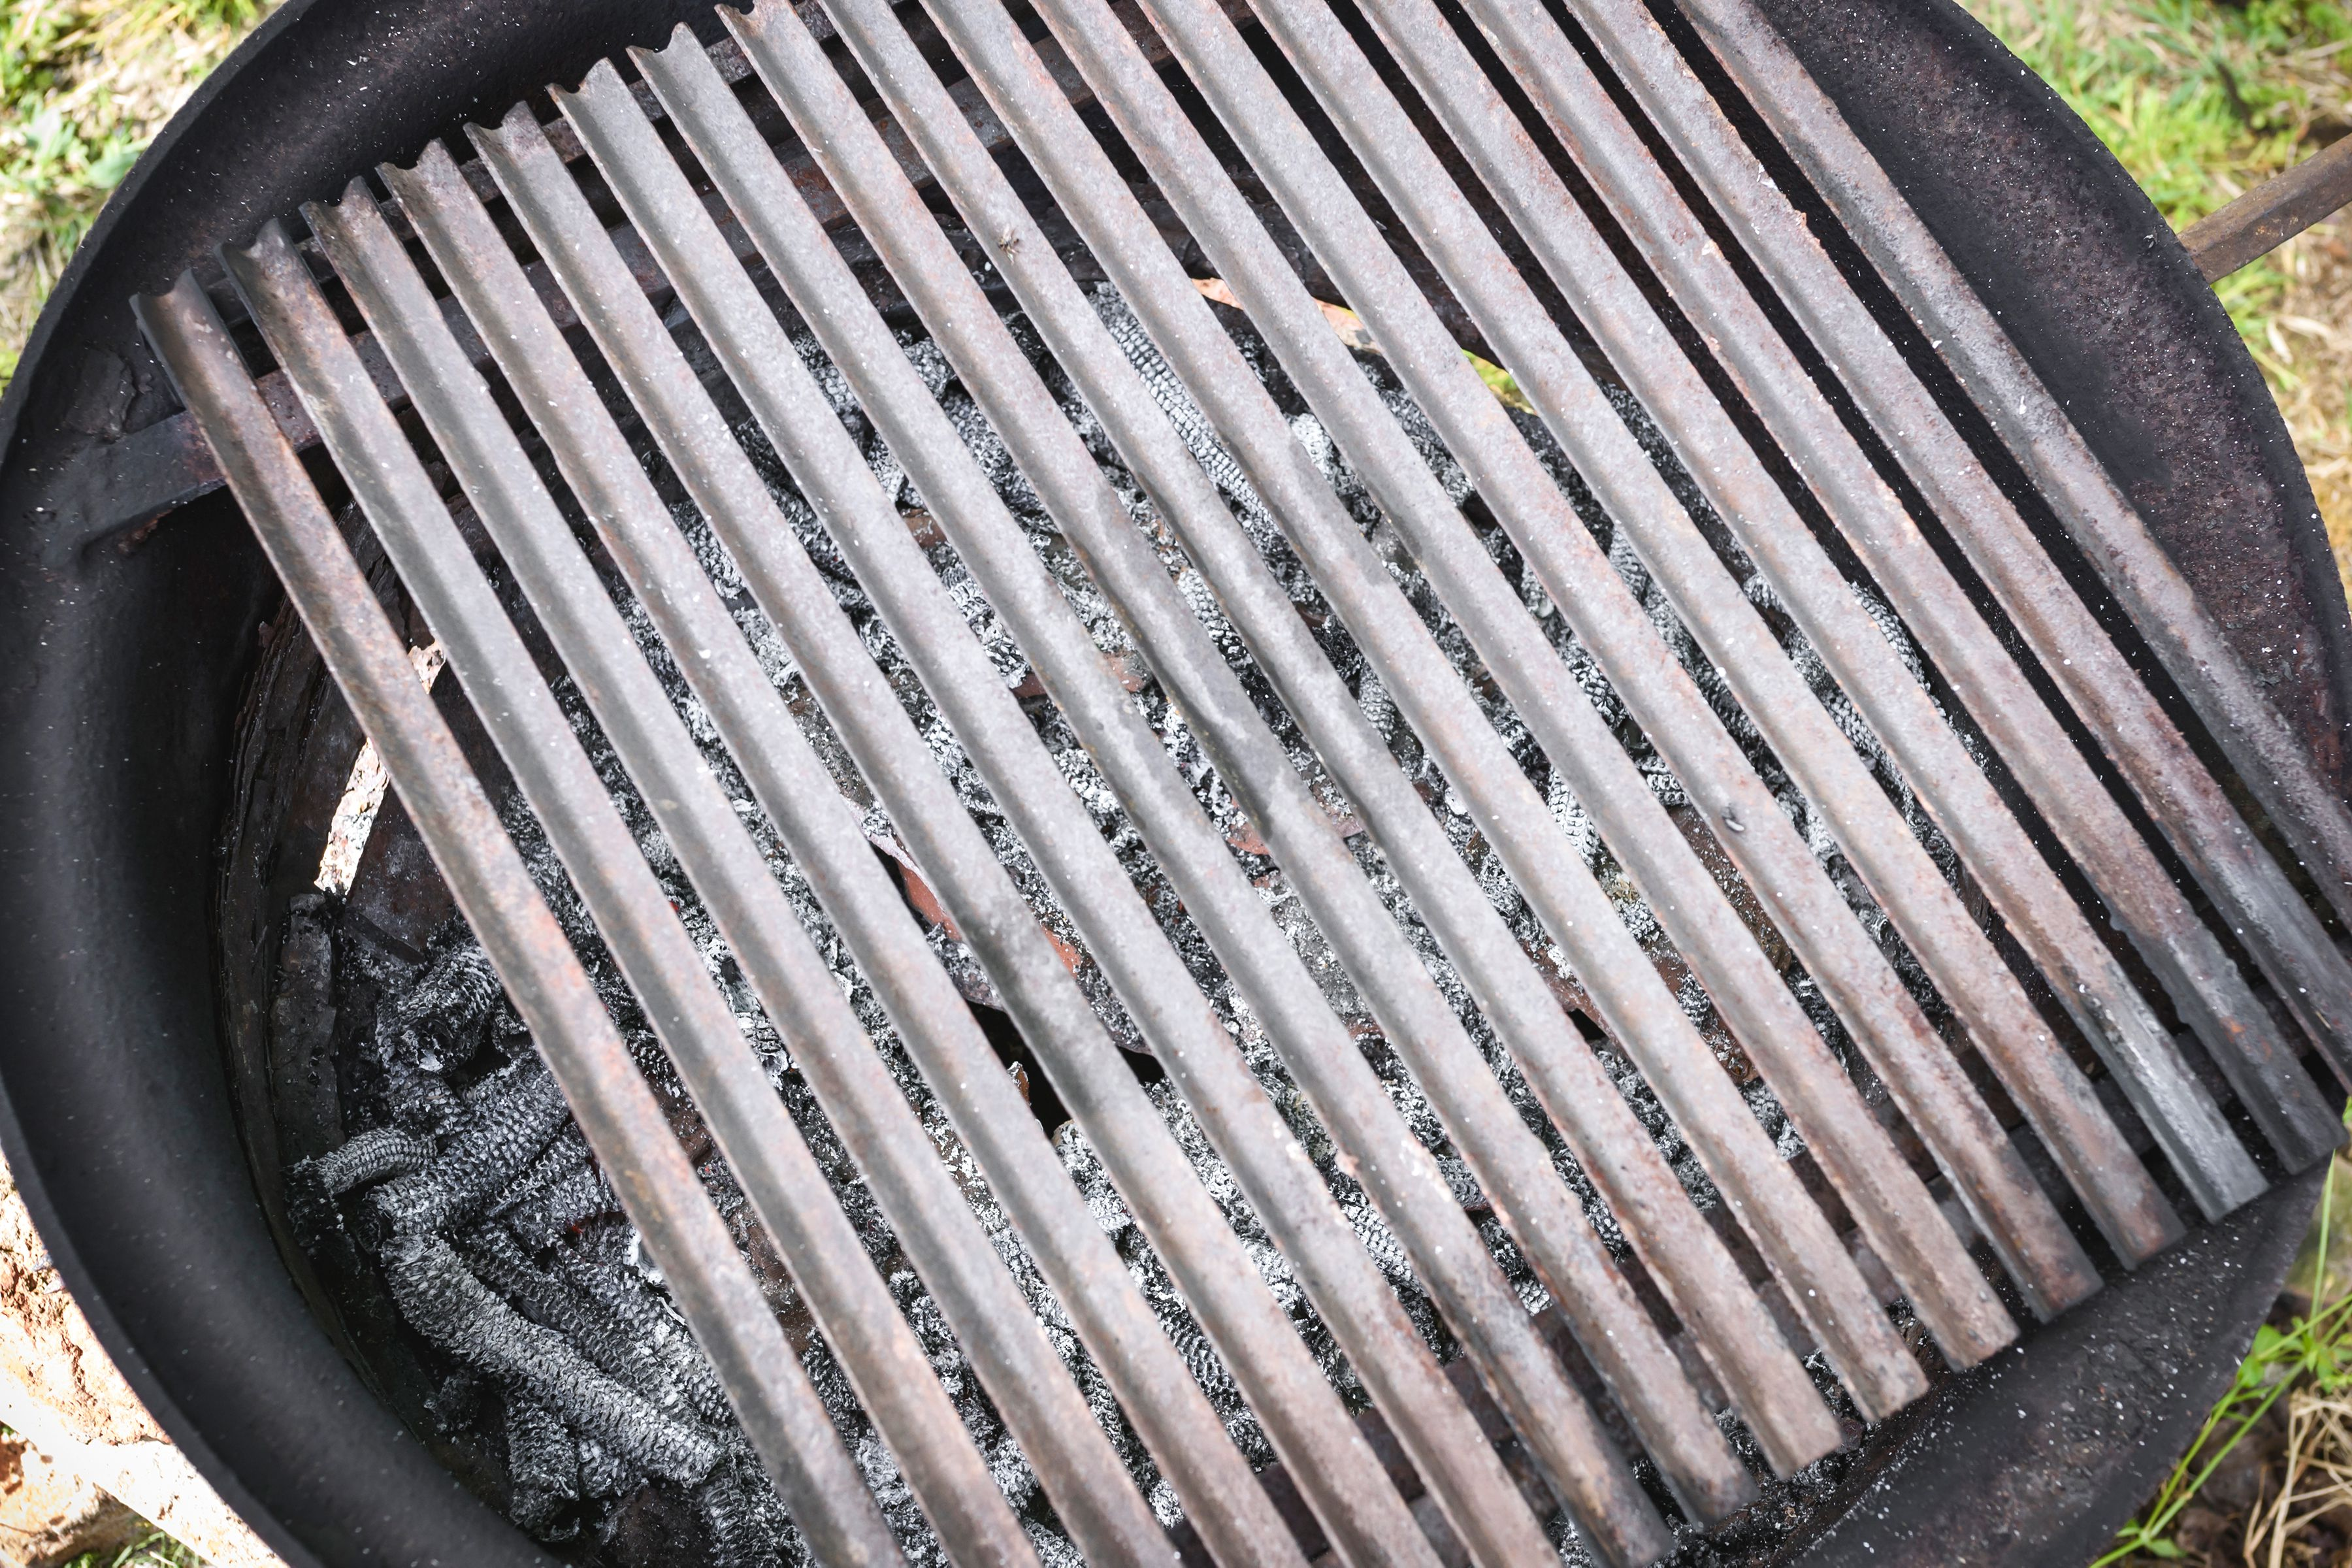 Preheat an outdoor grill